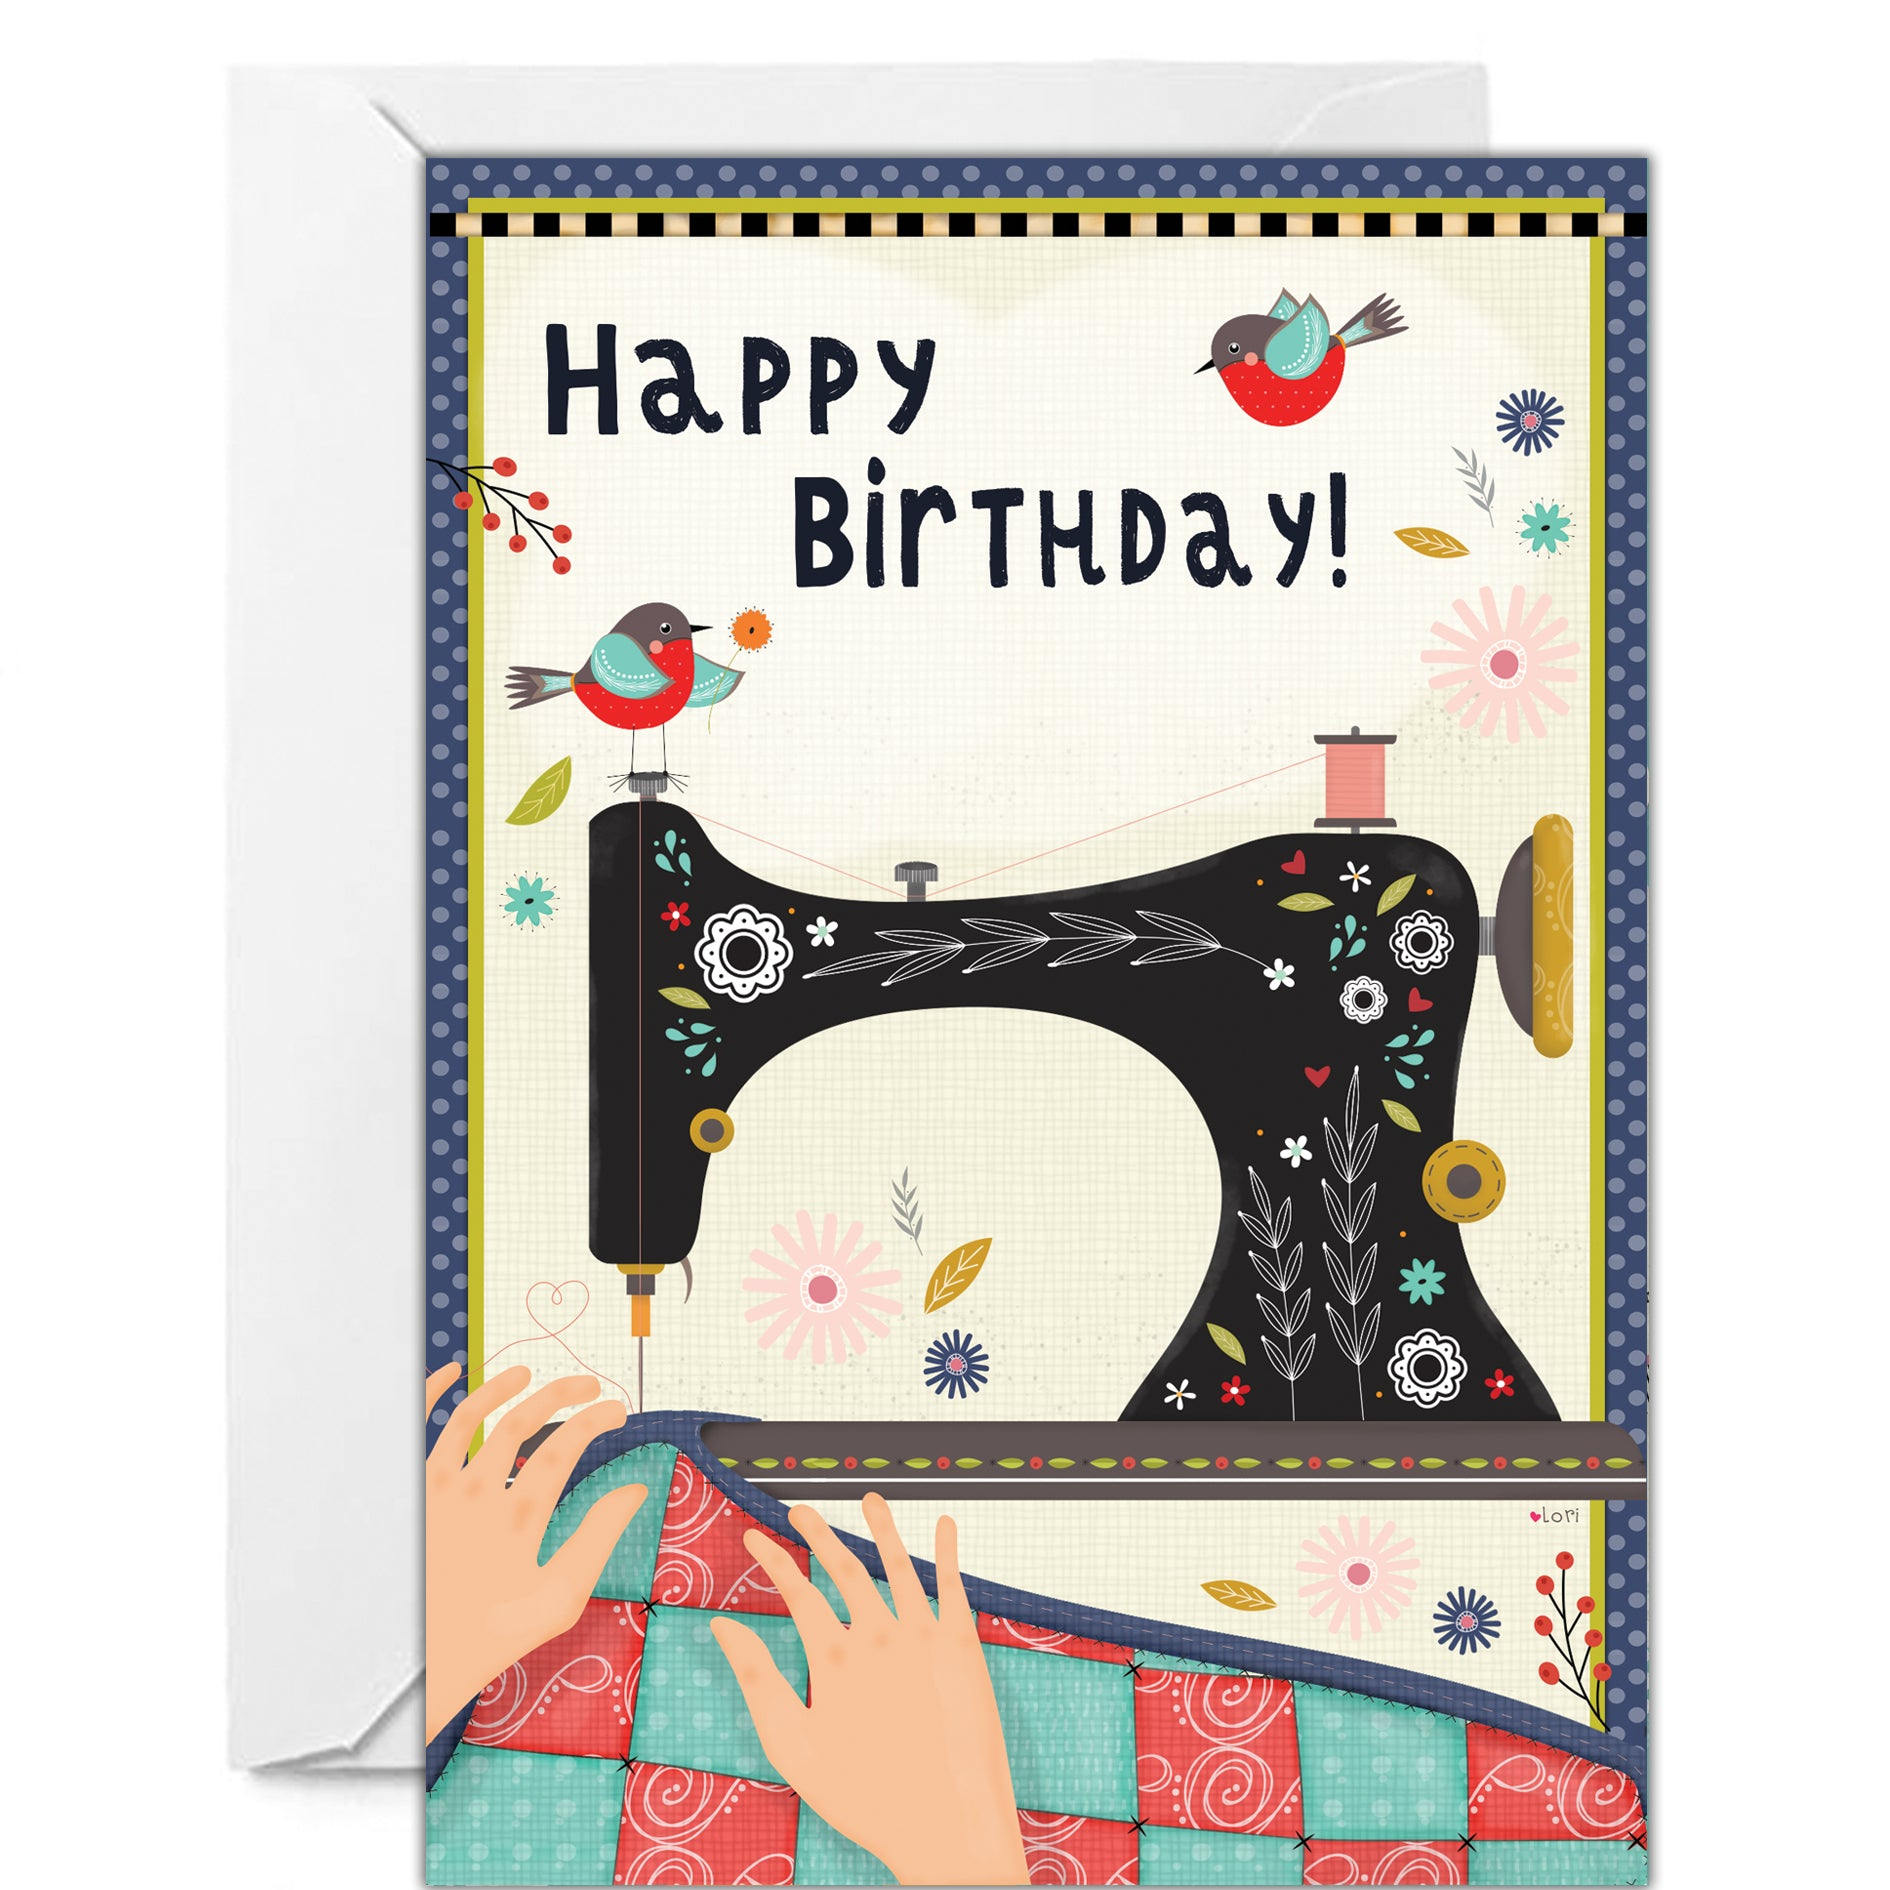 Happy Birthday Sewing Images